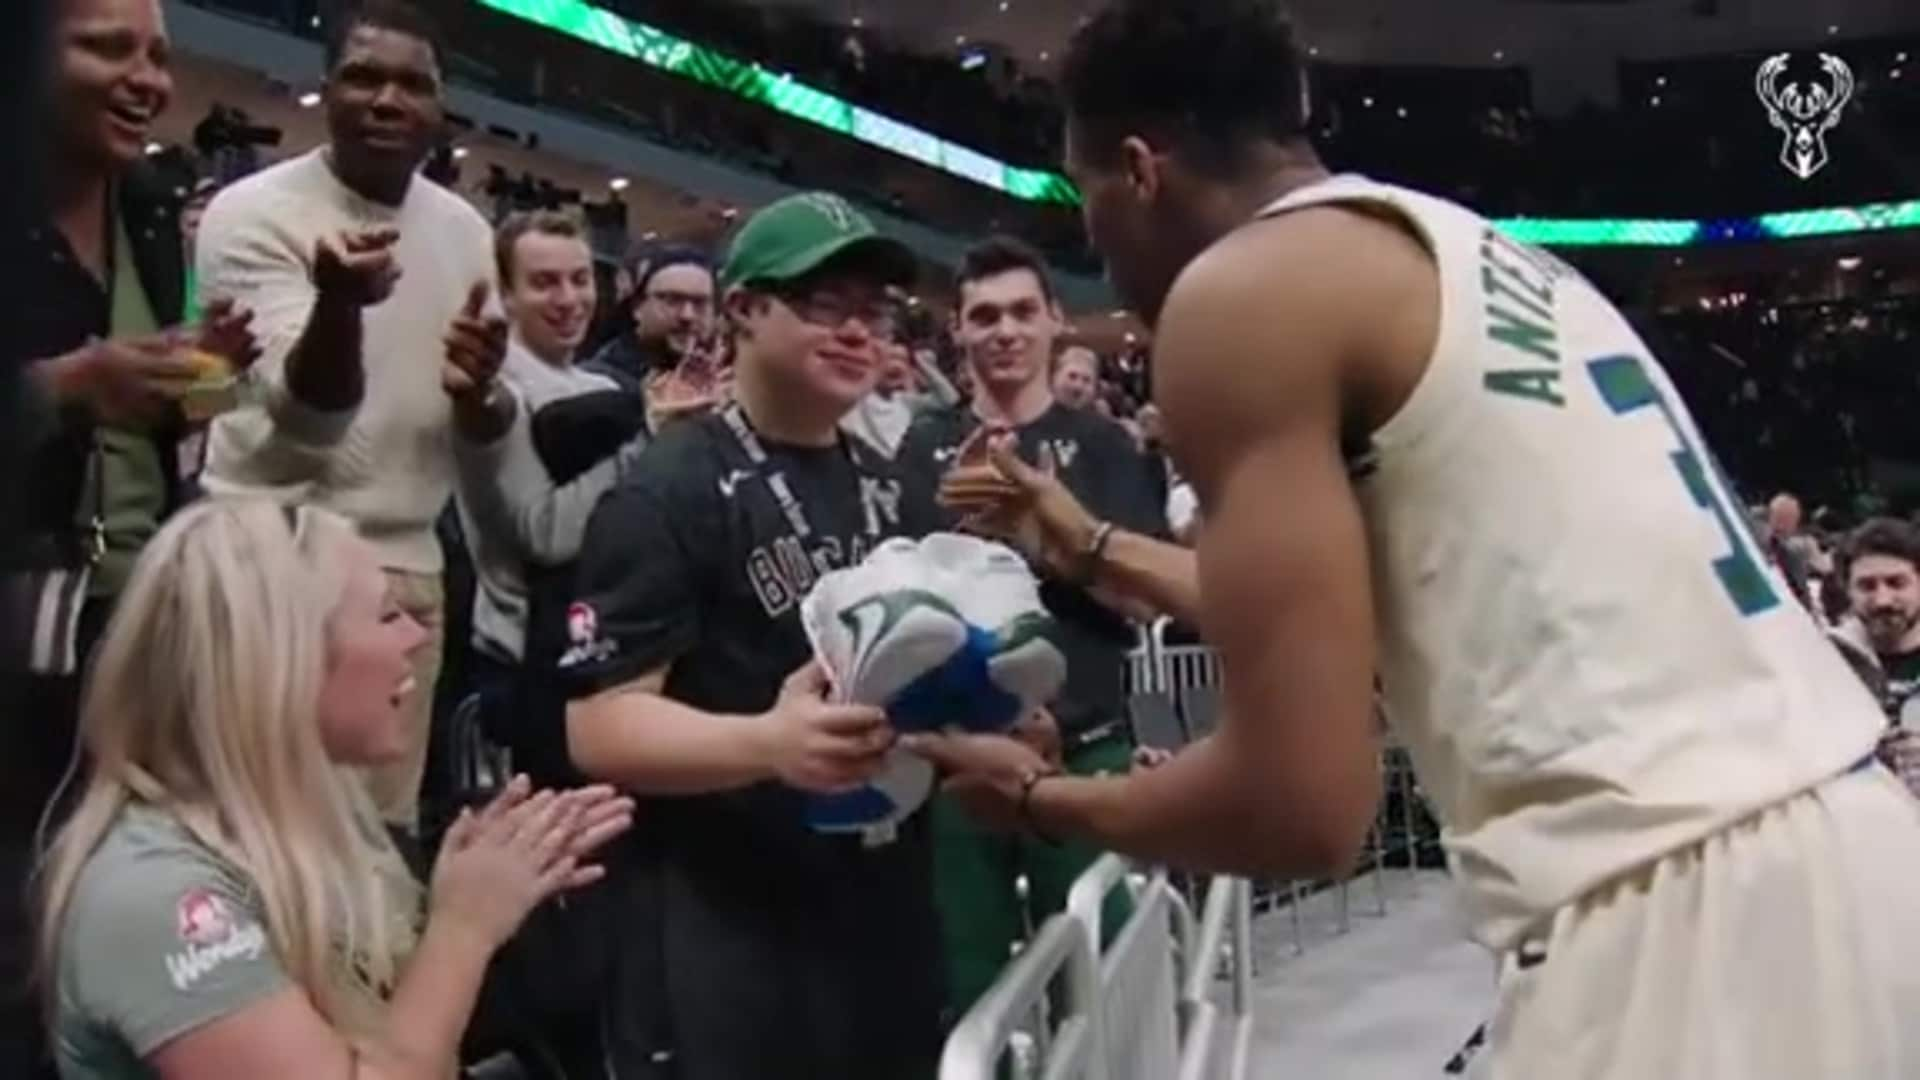 Giannis Antetokounmpo's Top 5 Off-Court Moments 2019-20